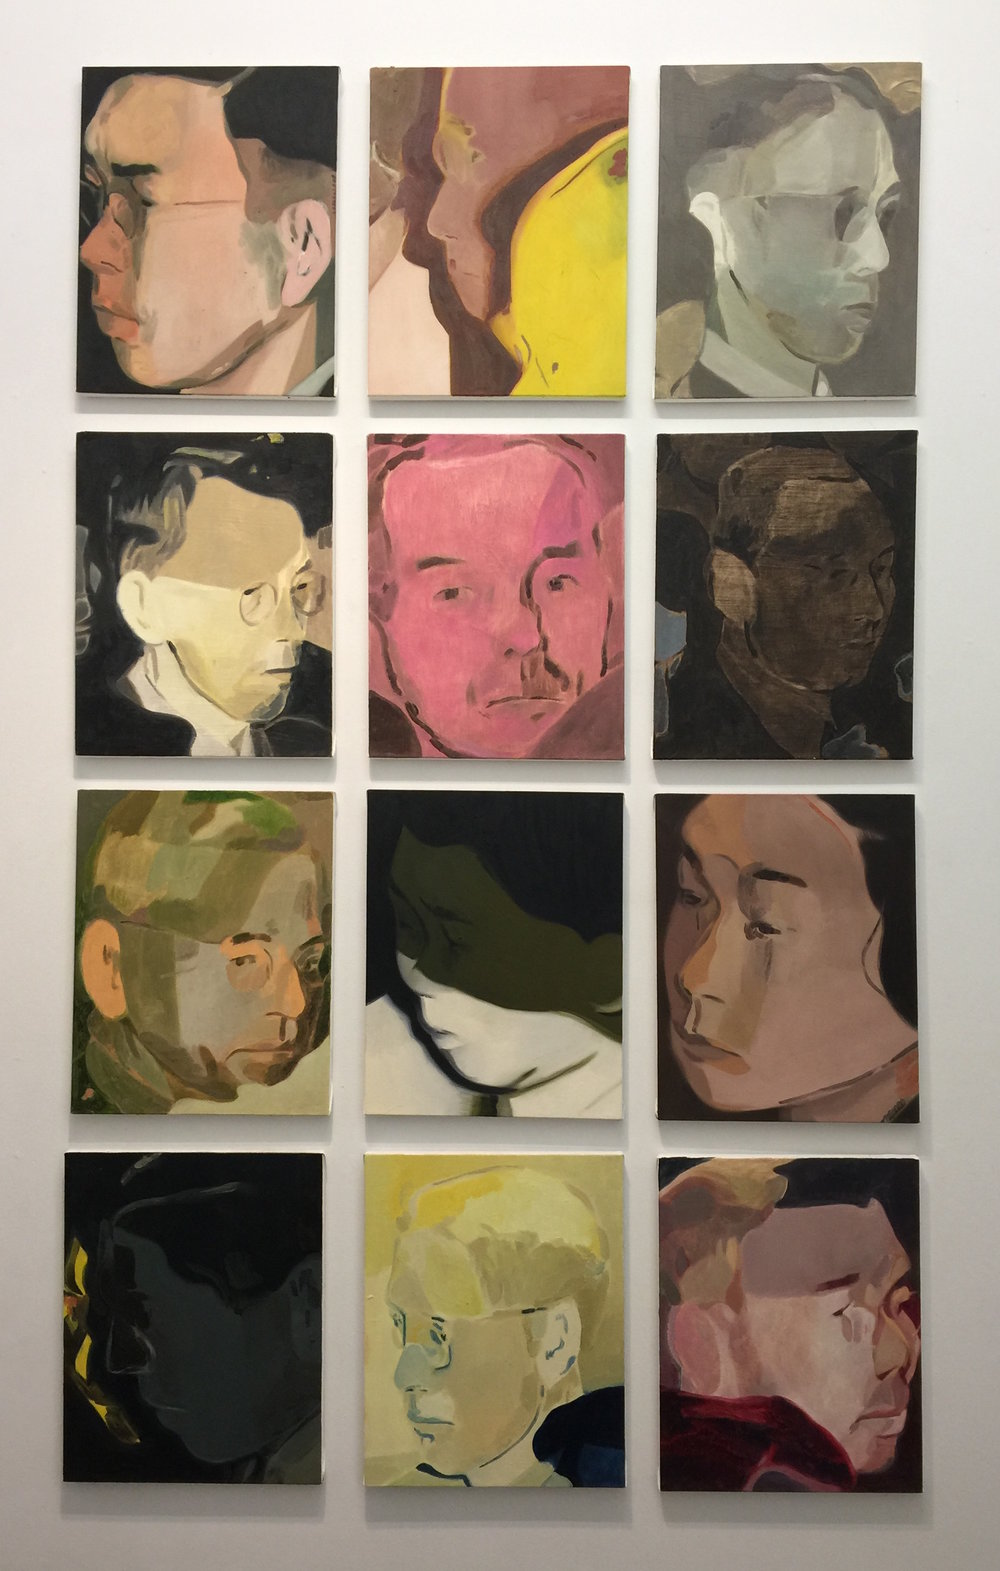 Anthony Cudahy, Everyone at the Funeral series, 2015-ongoing, oil on canvas, 19 x 15 inches each